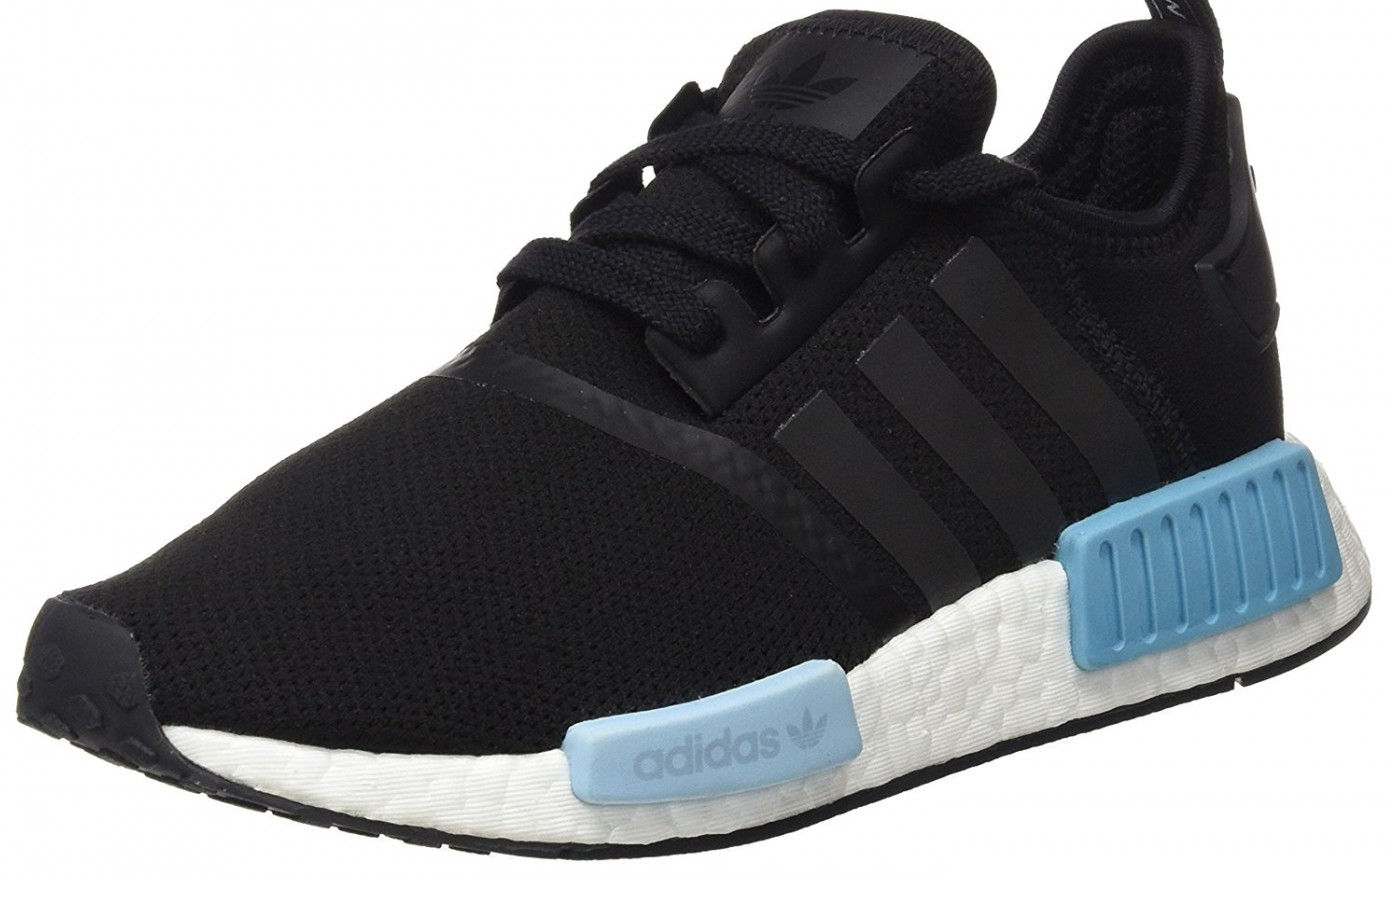 23596e6fedf89 Adidas NMD R1 Reviewed   Tested for Performance in 2019